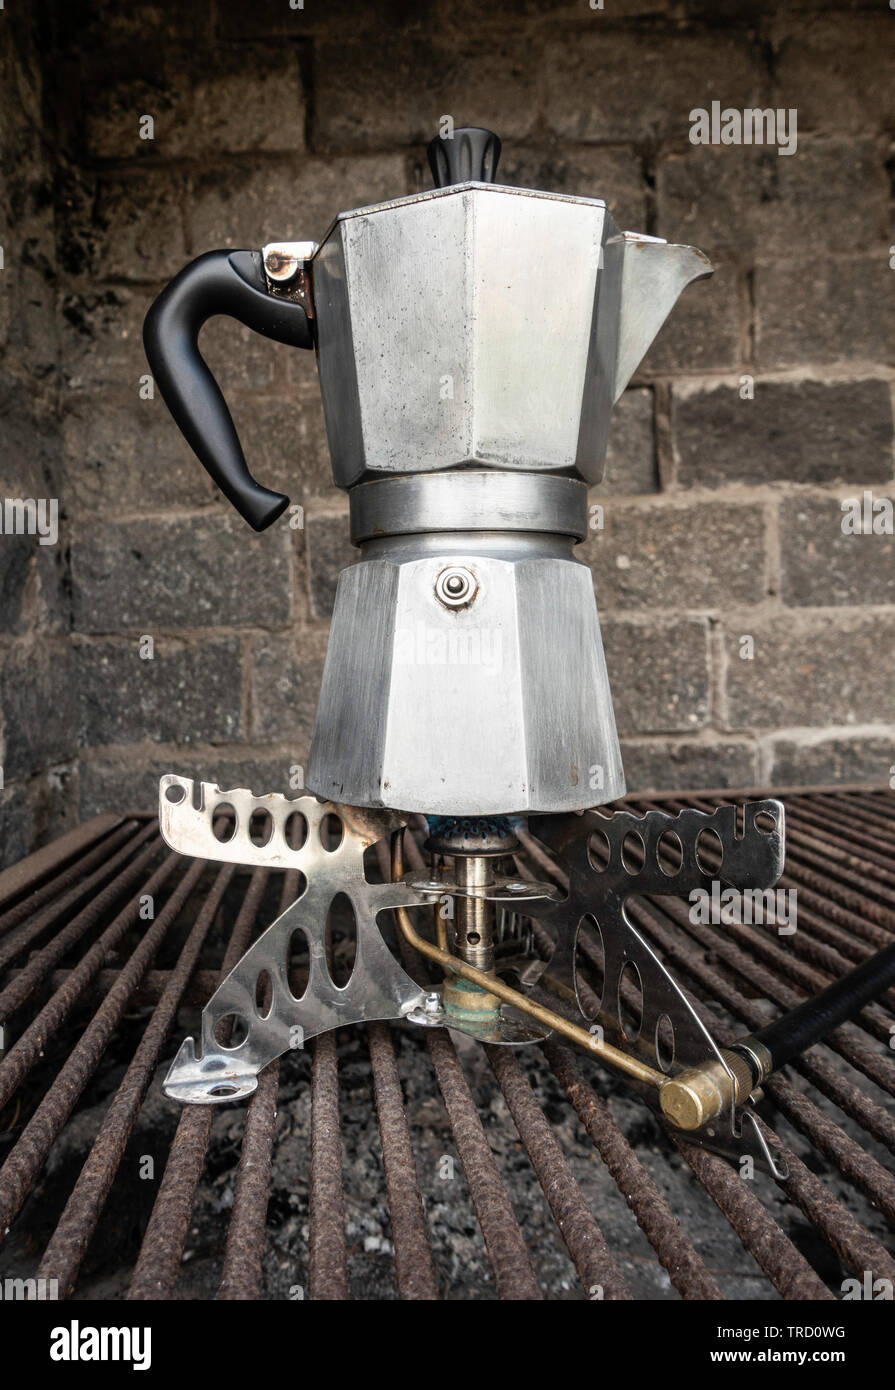 Spanish Cafetera/ Italian Moka coffee maker on camping gas stove. - Stock Image